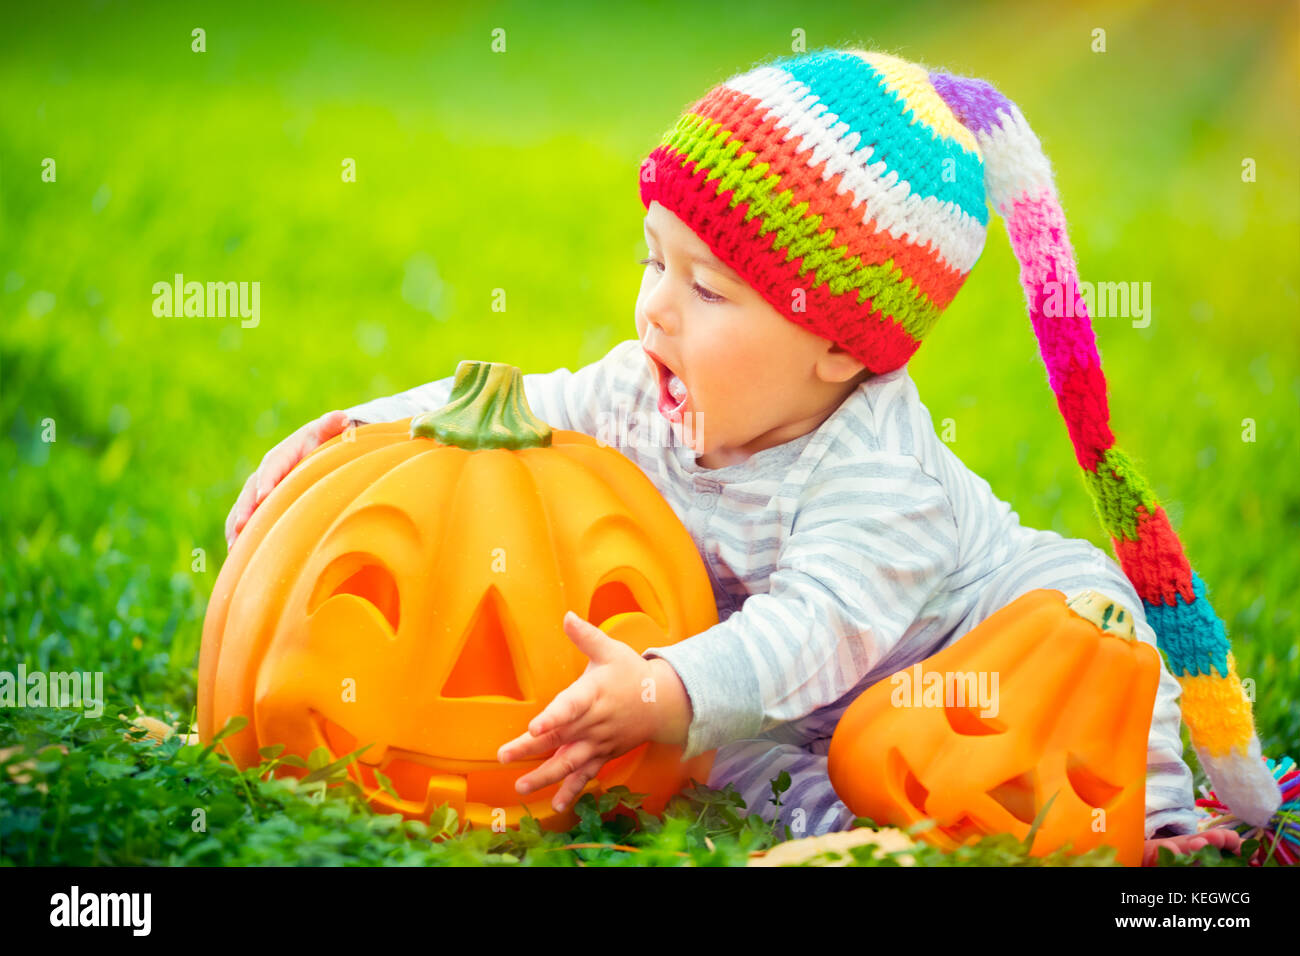 Cute little baby boy wearing funny colorful hat trying to bite beautiful carved festive pumpkin, playing outdoors - Stock Image